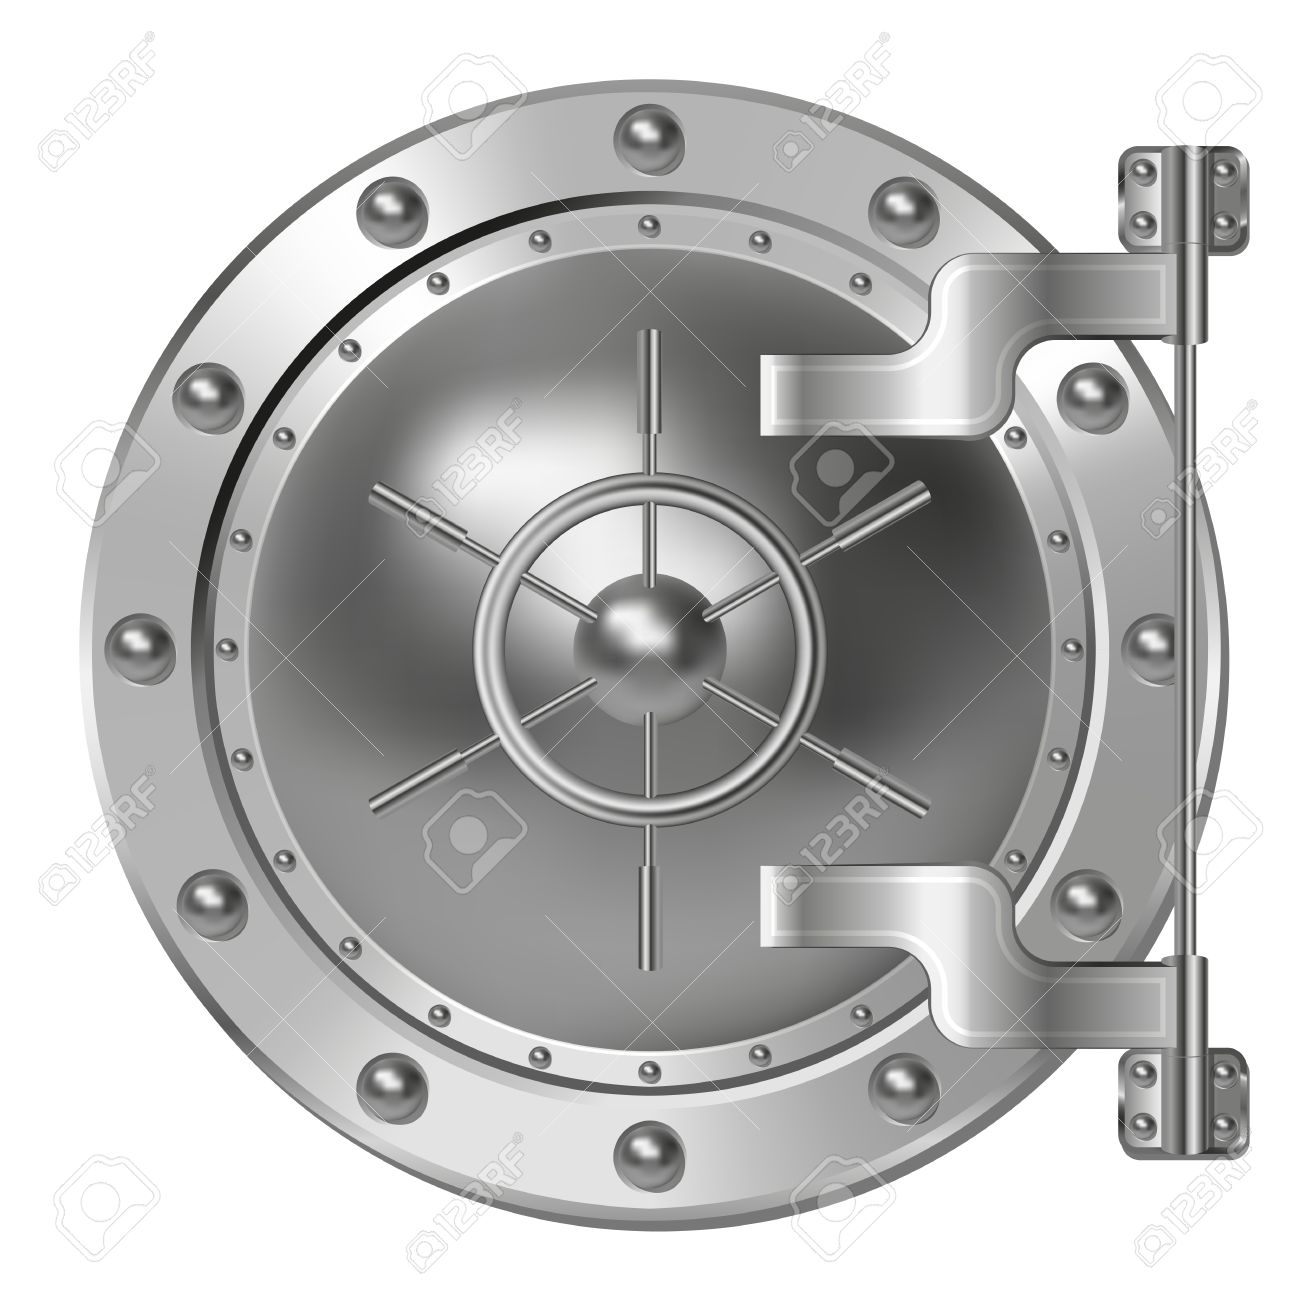 Bank vault door clipart banner black and white library Bank Vault Door Royalty Free Cliparts, Vectors, And Stock ... banner black and white library